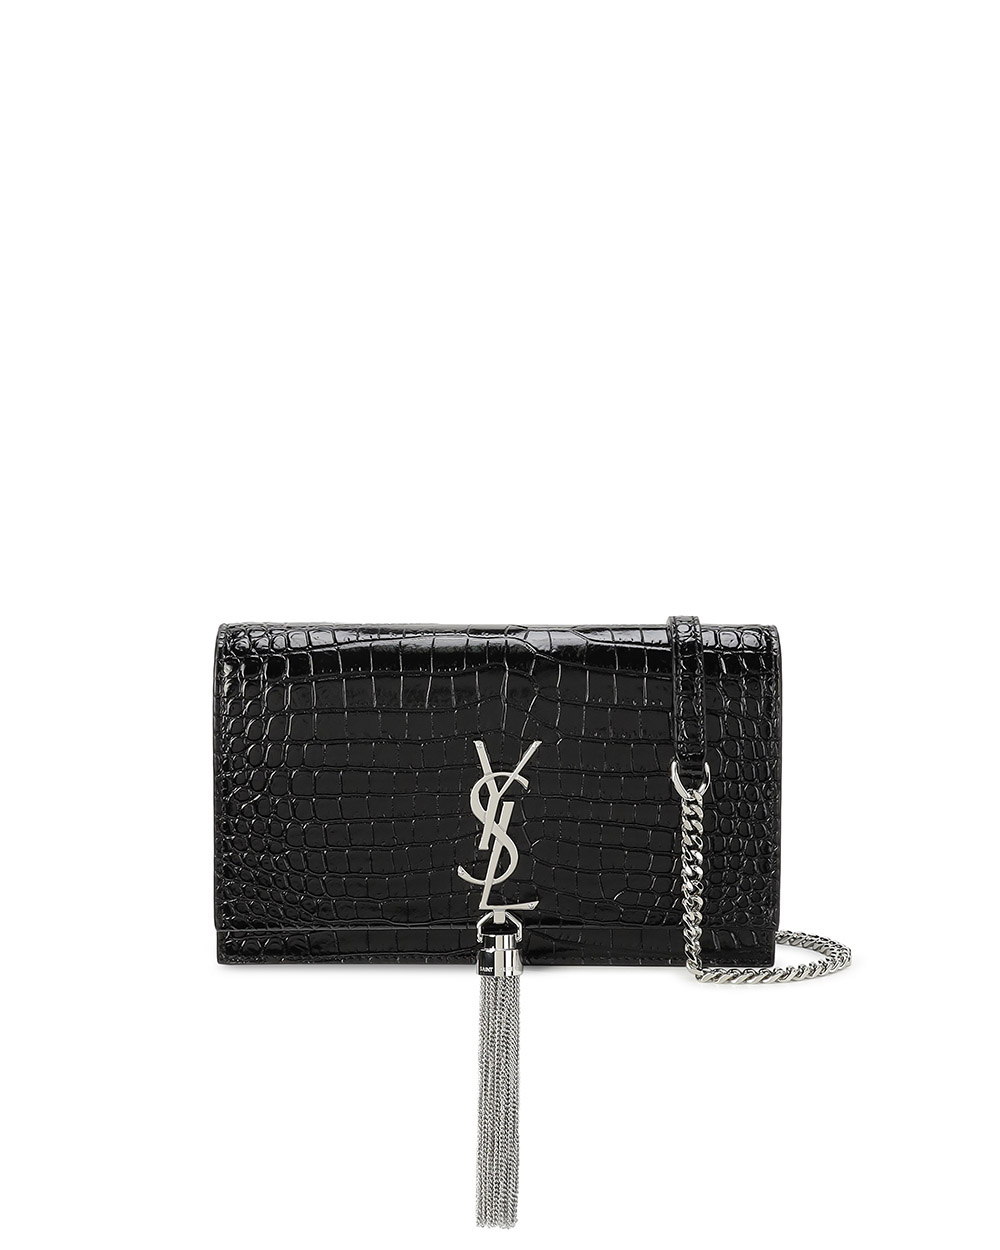 Crocodile Leather Crossbody Bag